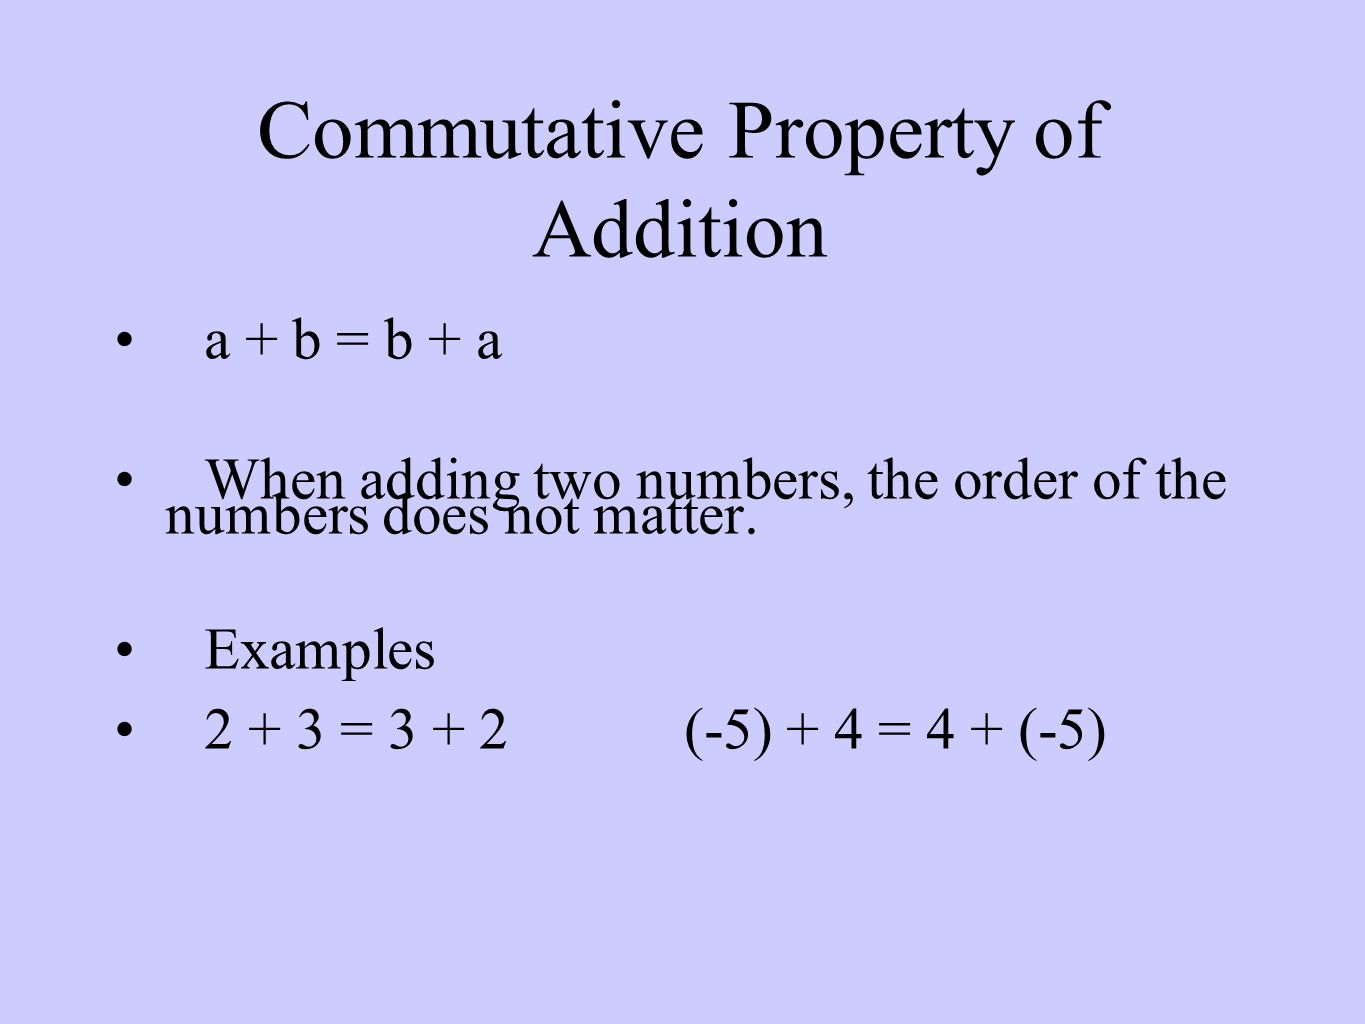 Commutative Property of Addition a + b = b + a When adding two numbers, the order of the numbers does not matter.